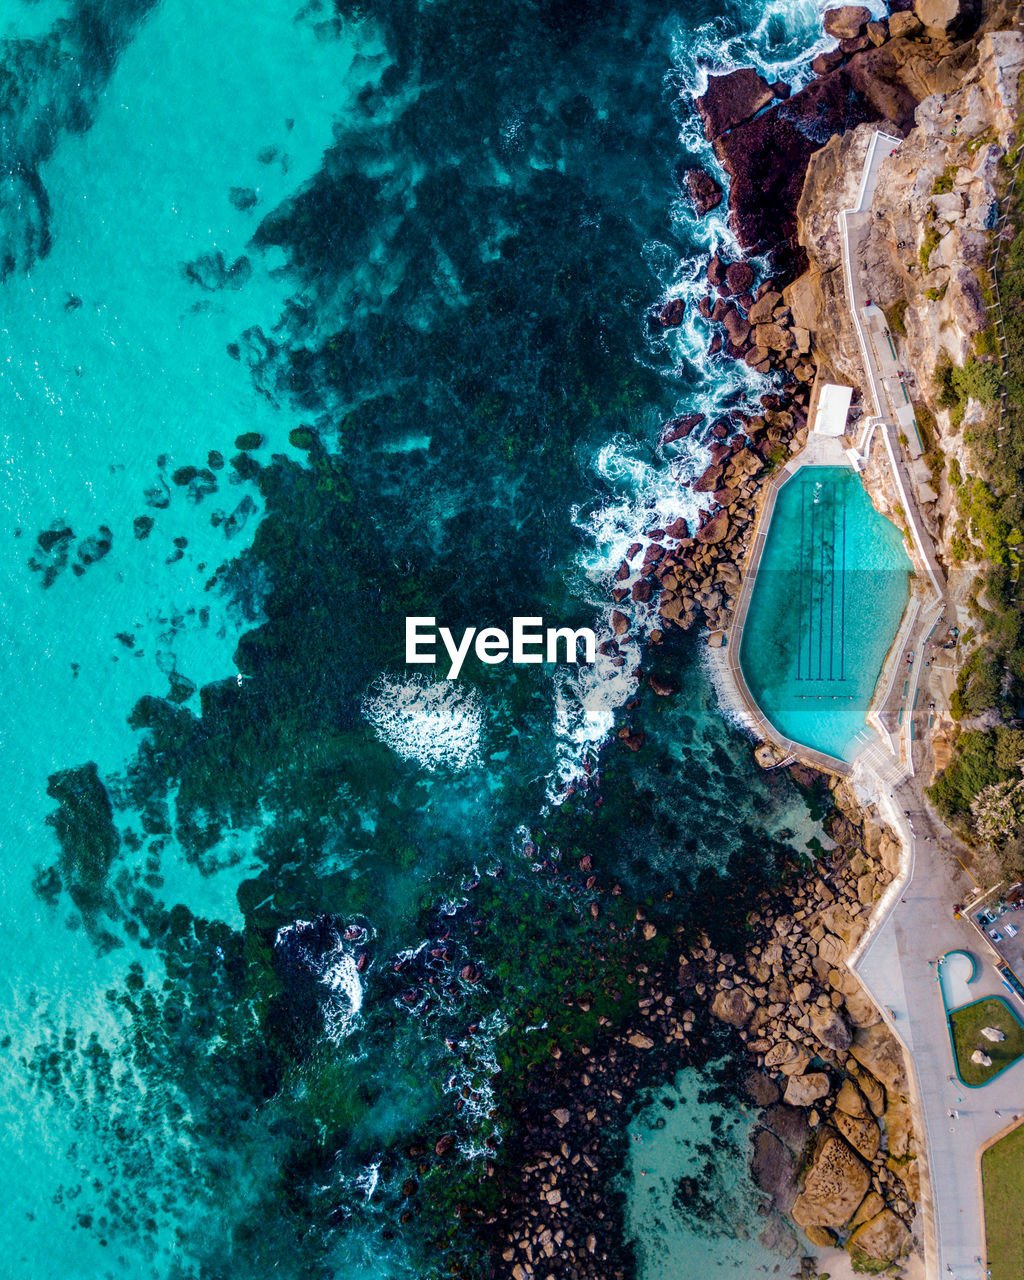 water, sea, nature, no people, high angle view, aerial view, day, underwater, rock, outdoors, beauty in nature, scenics - nature, land, tranquility, solid, tranquil scene, animal themes, animal, beach